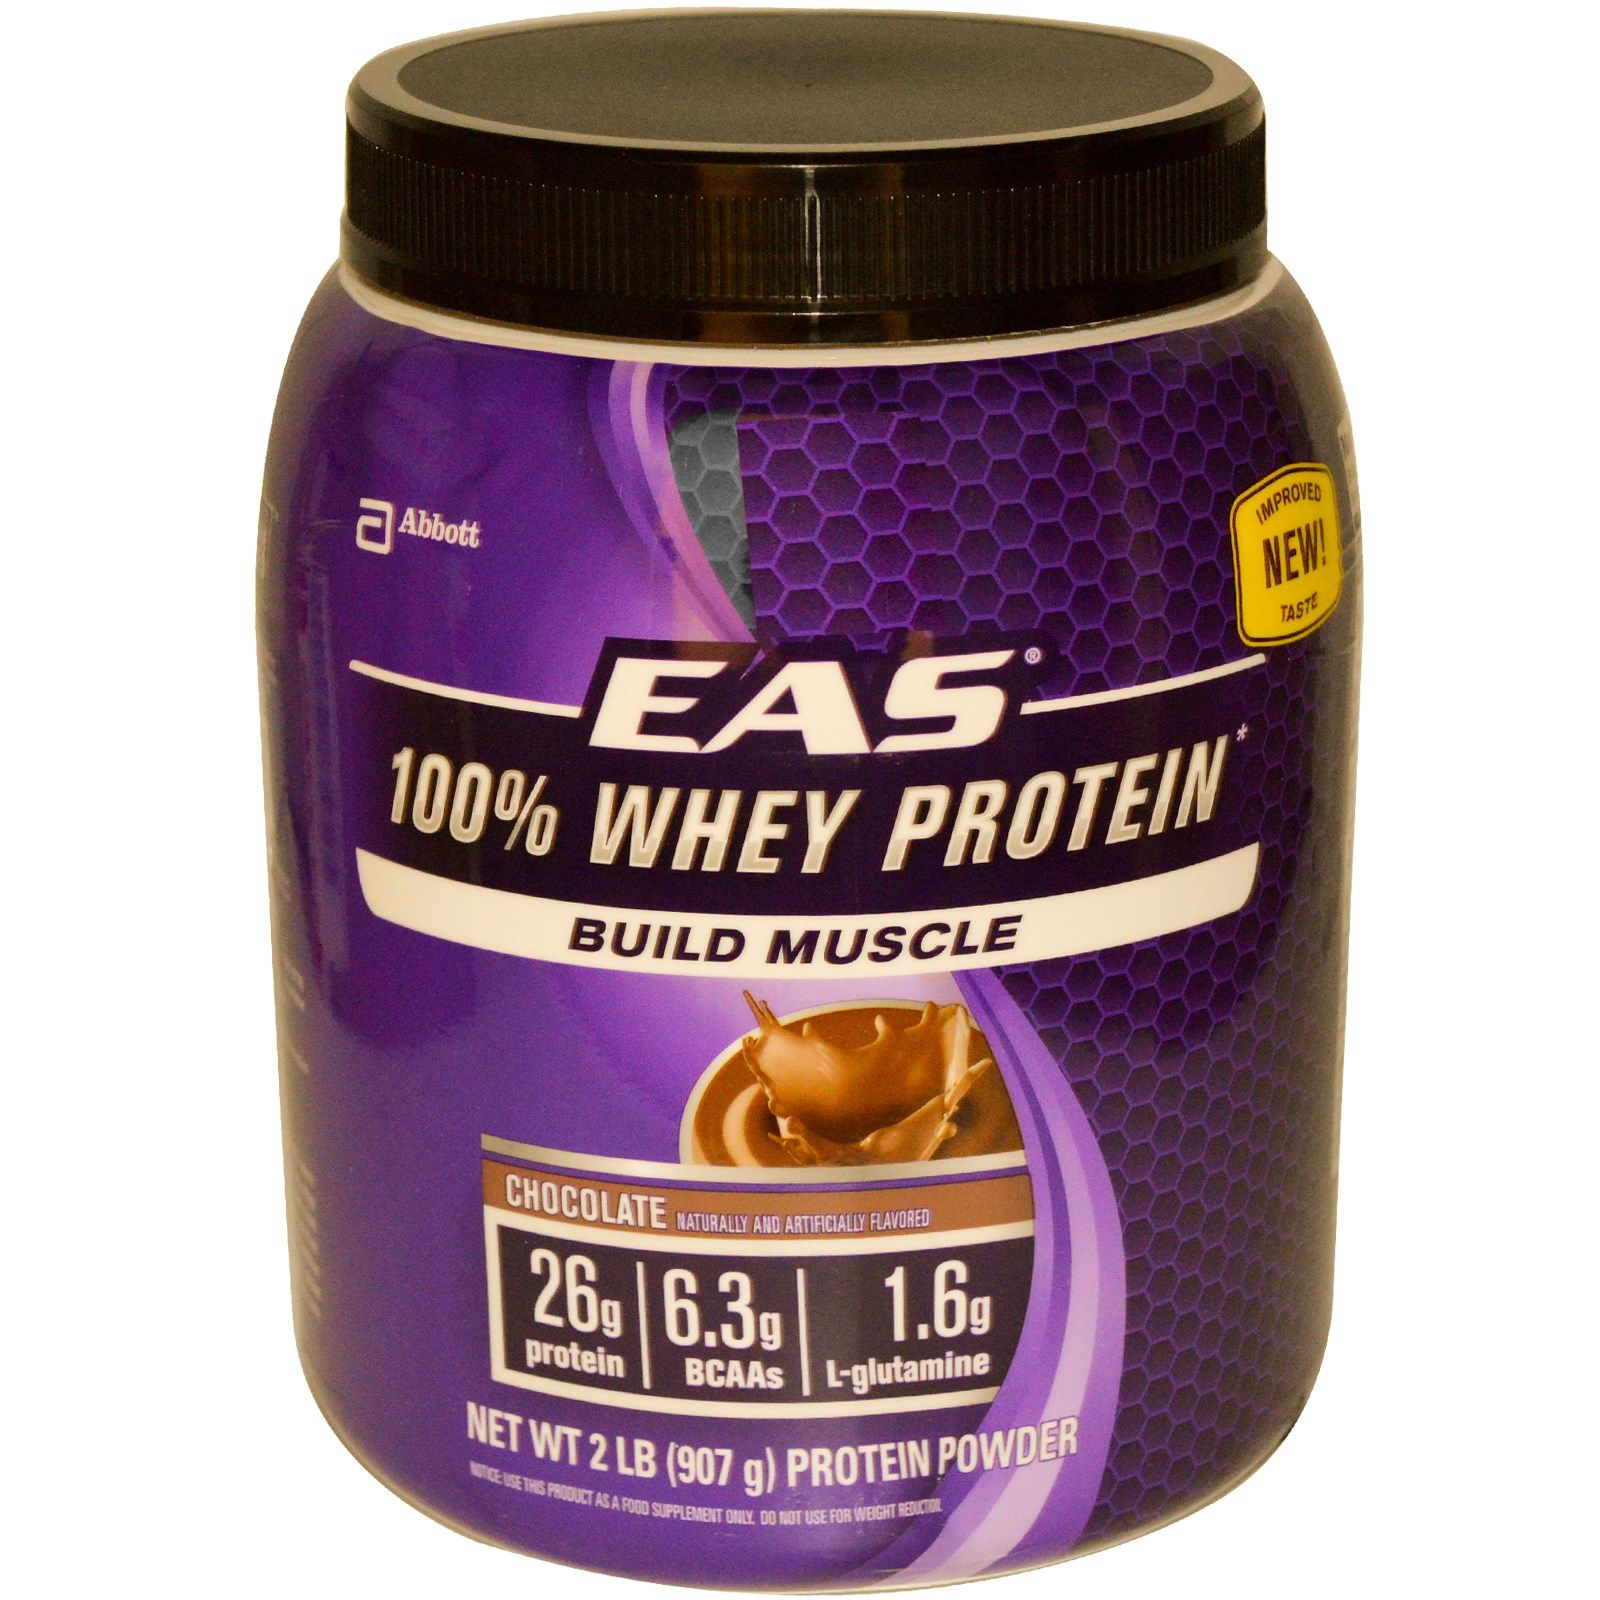 Eas build muscle